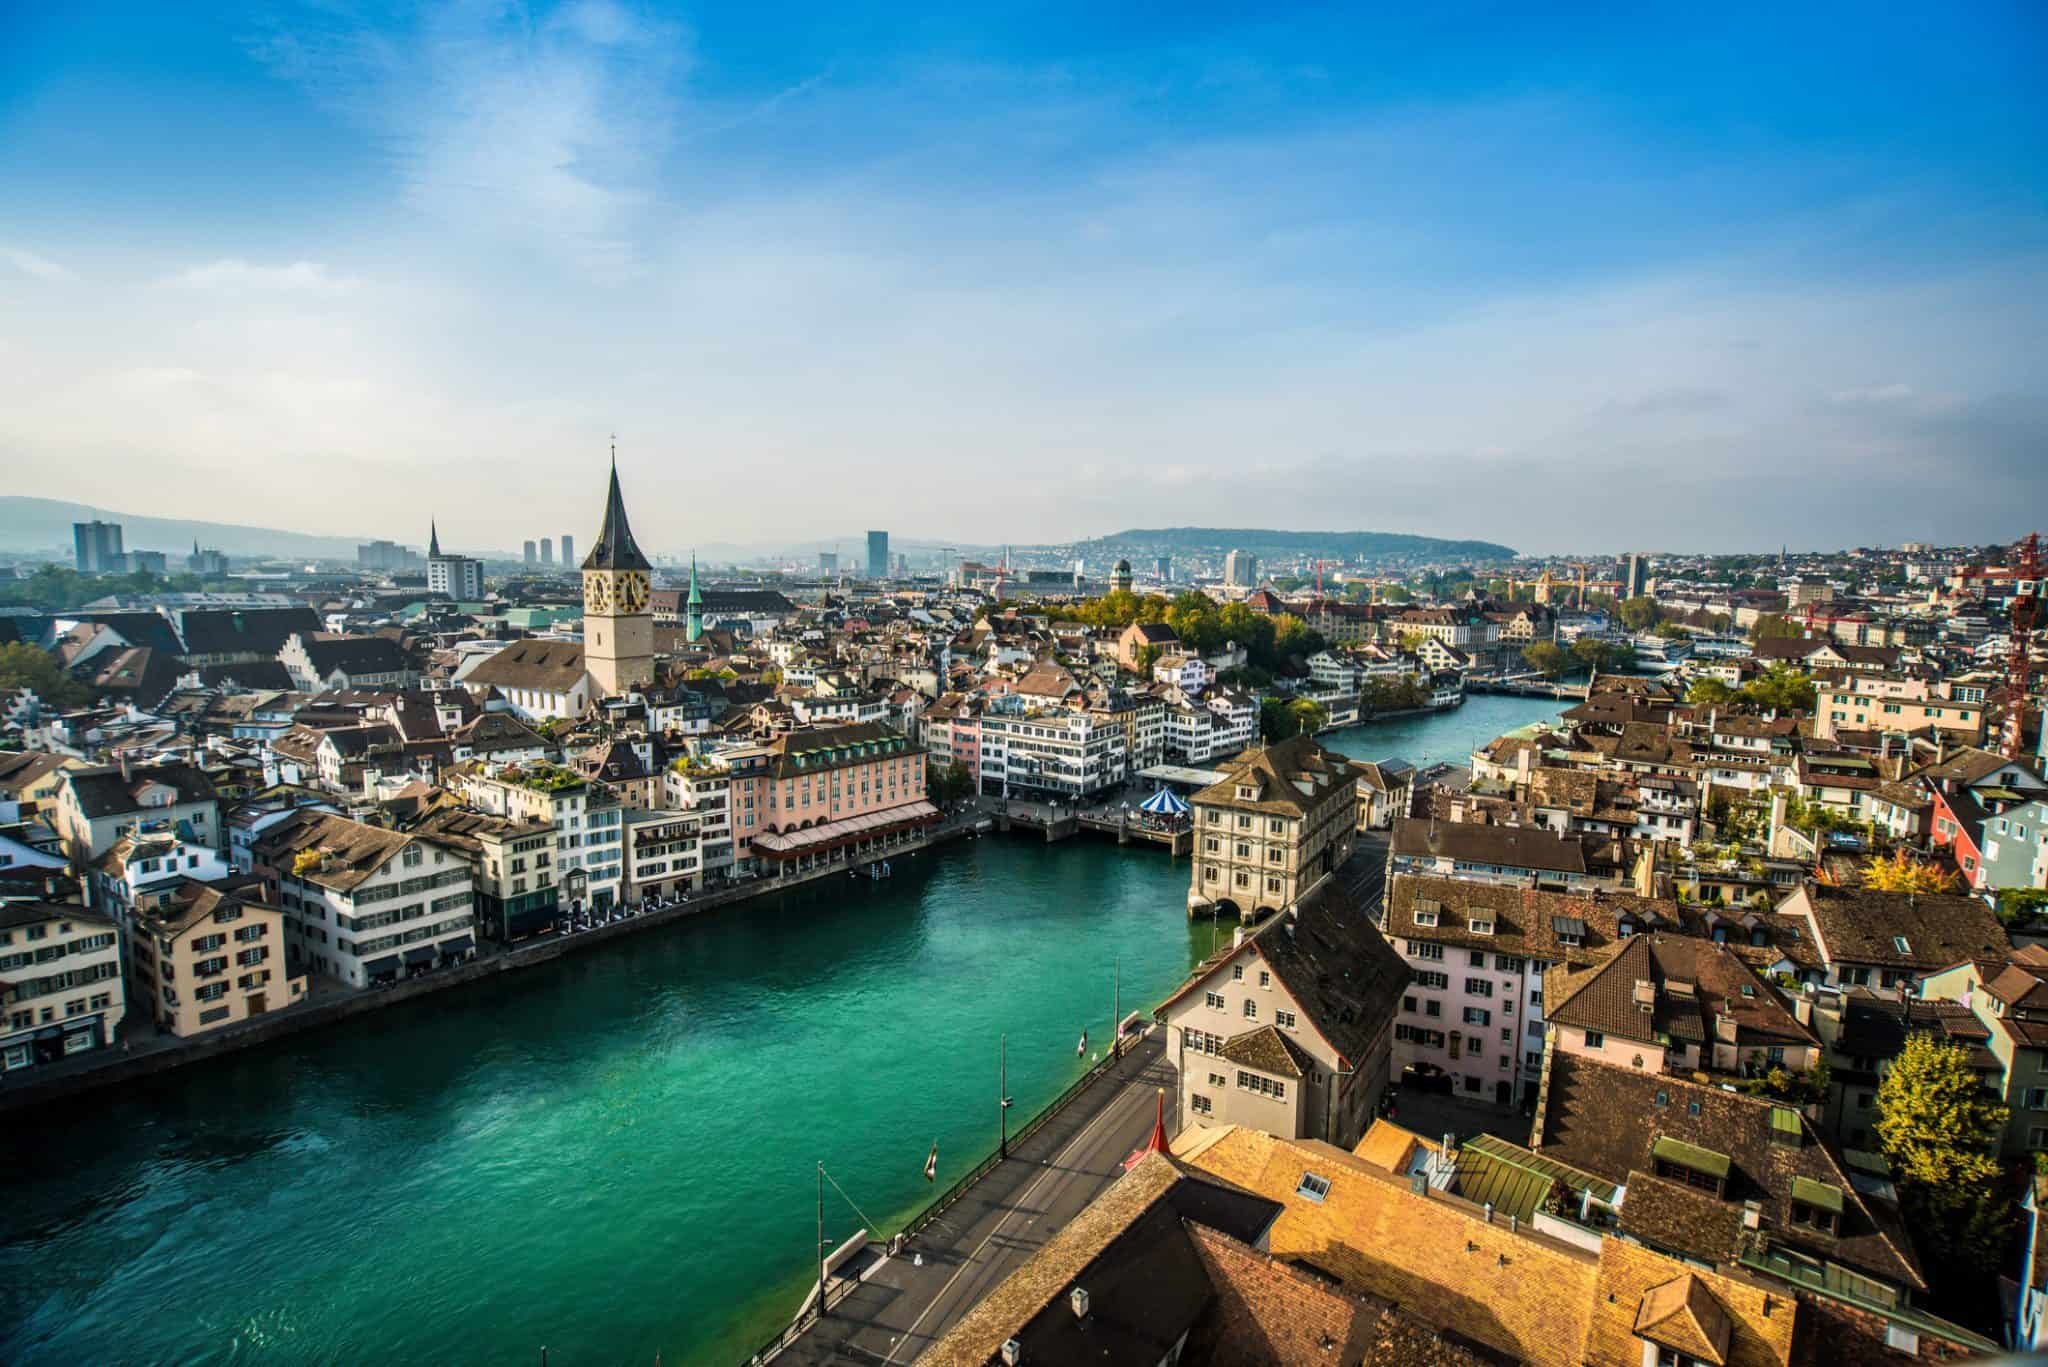 Aerial View Of Zurich, Switzerland